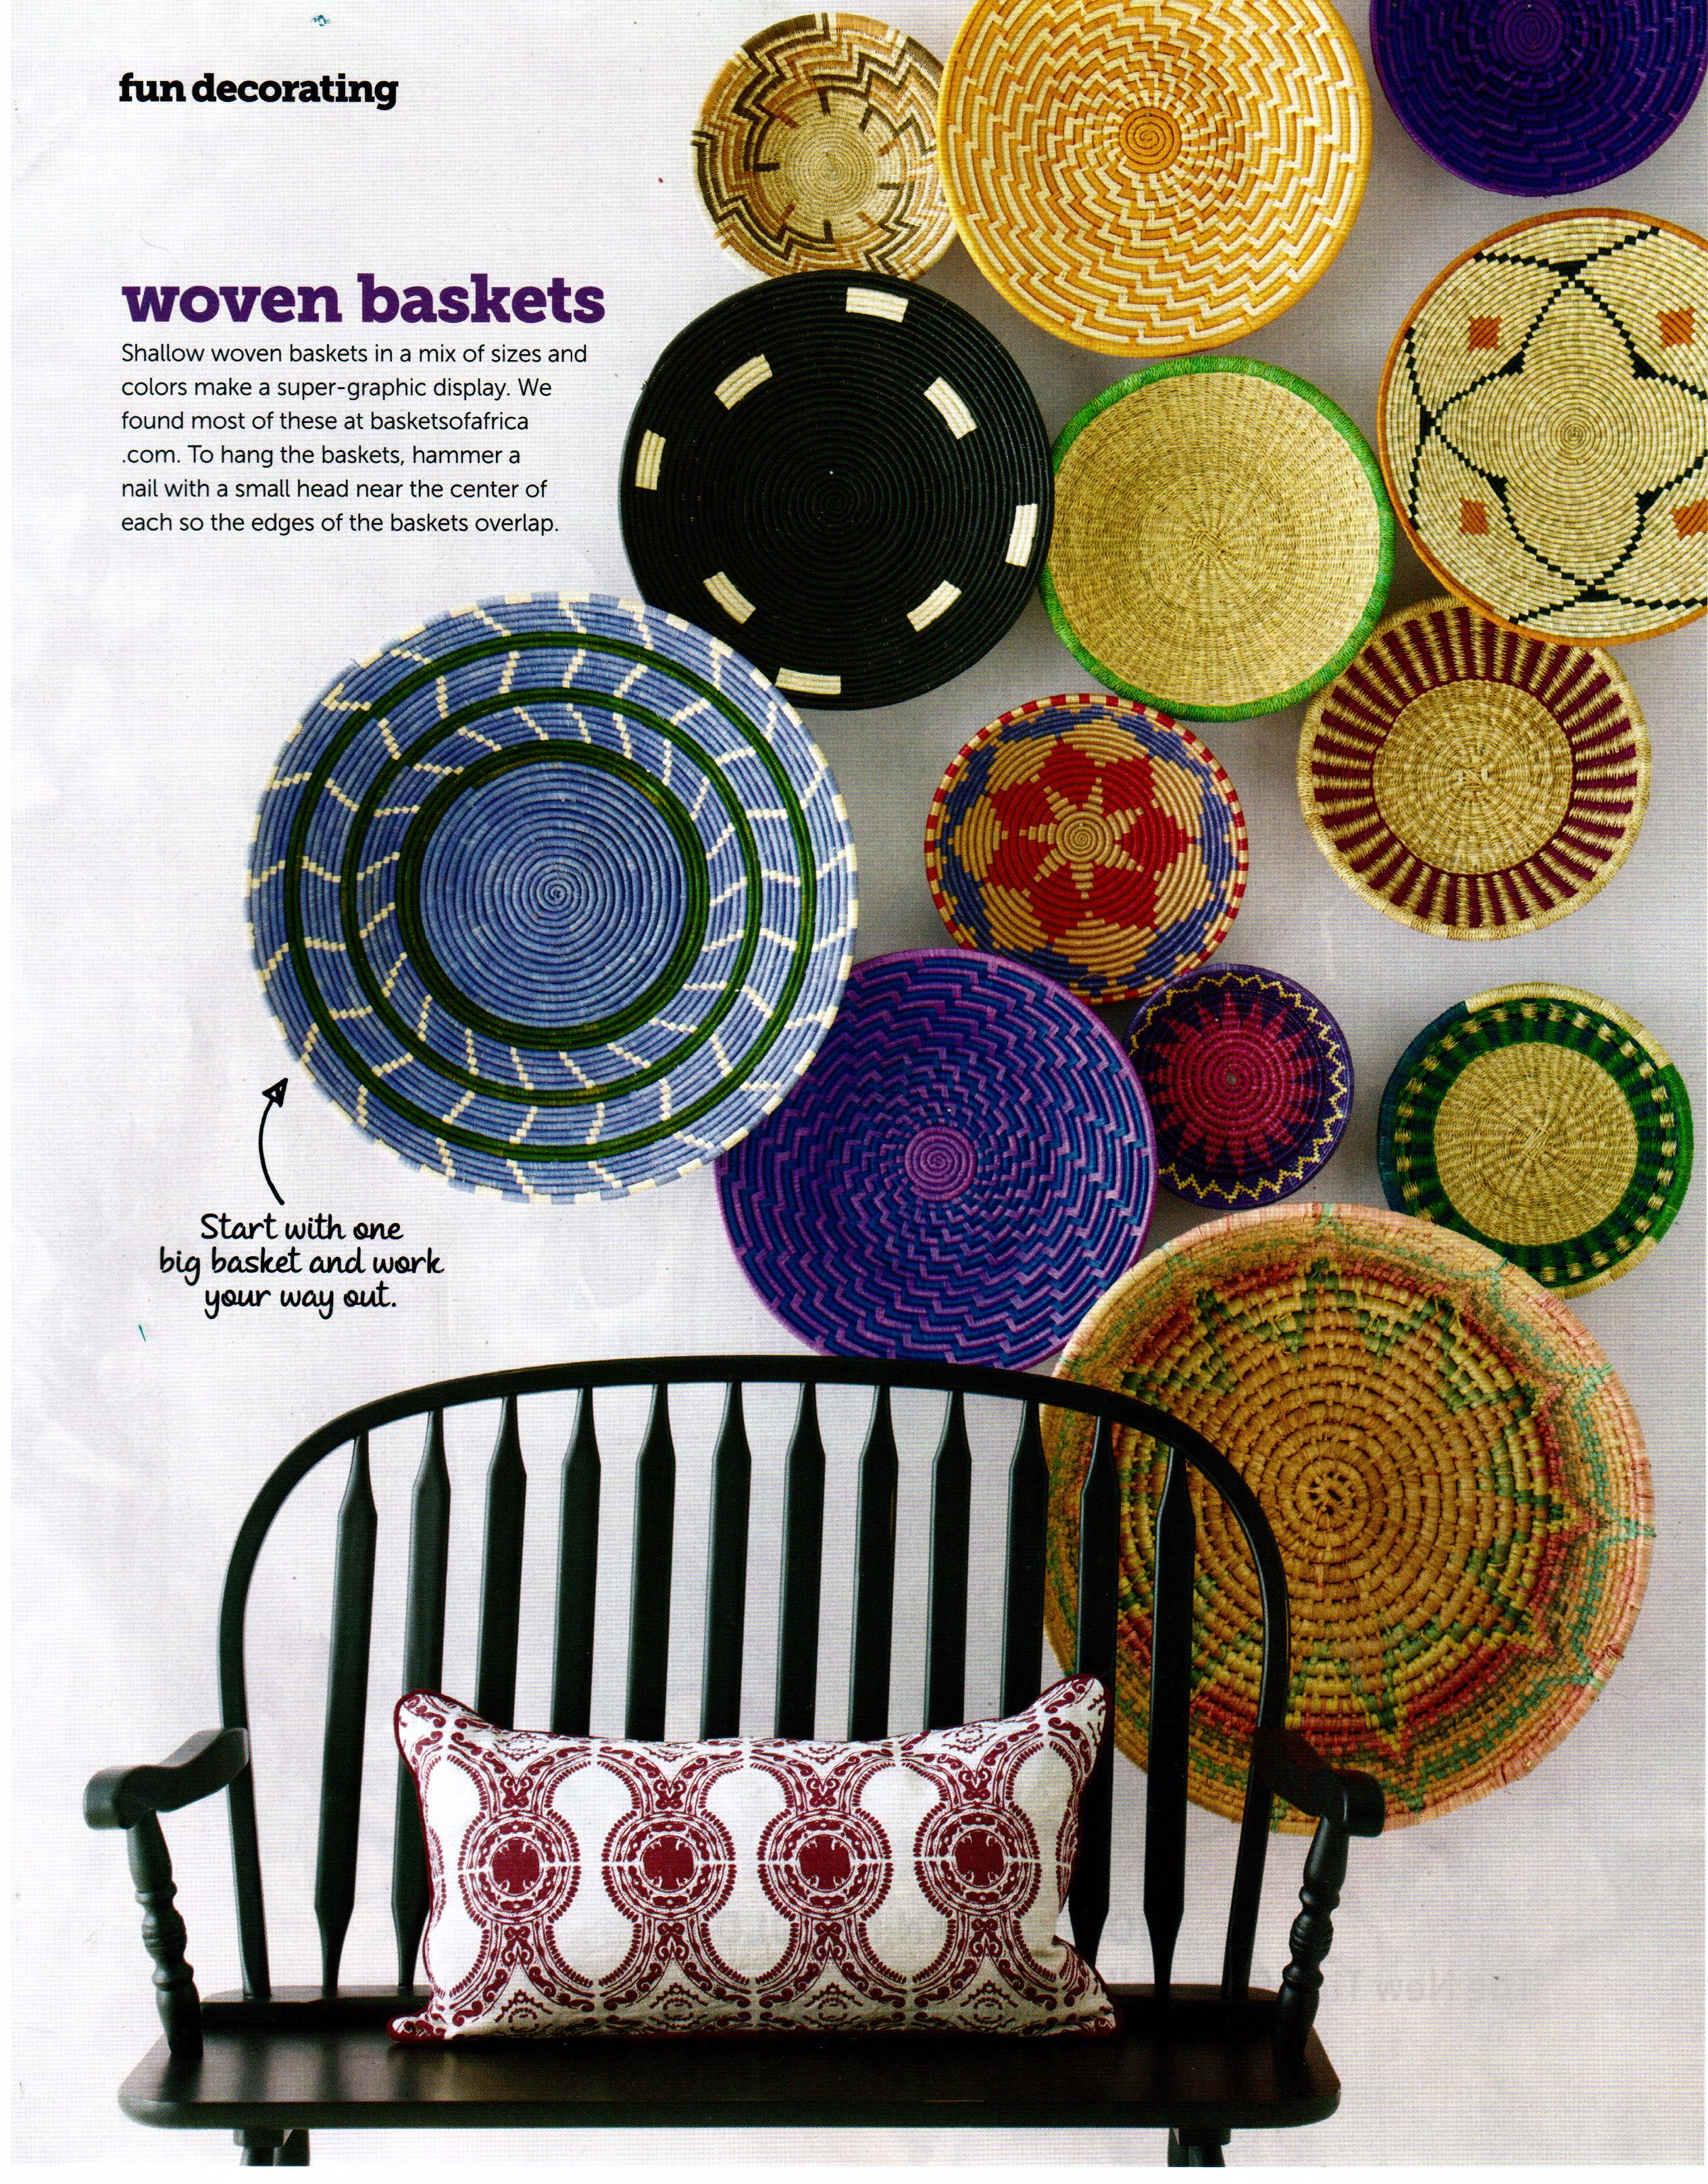 Adore These African Baskets Hung Overlaping On The Wall Basketsofafrica Com Basket Wall Decor Diy Wall Decor Baskets On Wall